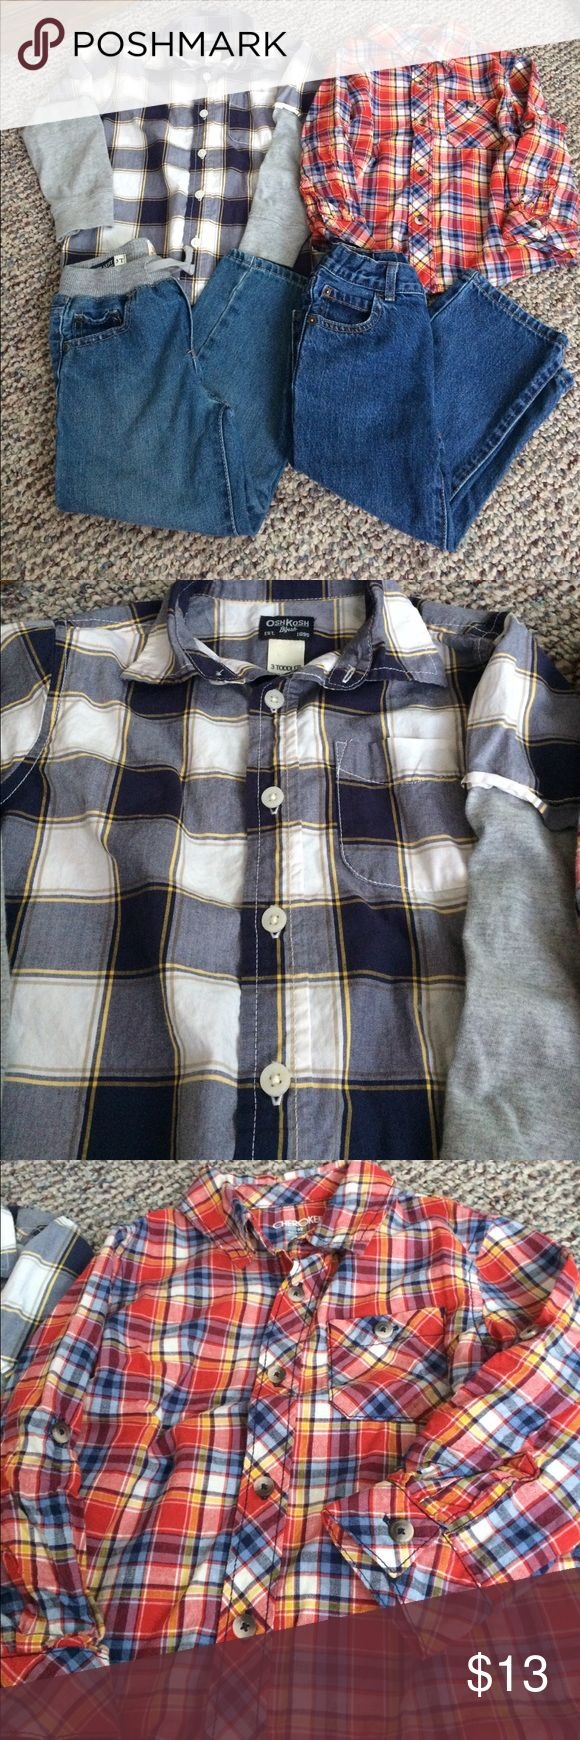 Boys 3T button up shirts and jeans Oshkosh button up shirt with gray tshirt like sleeves,  Cherokee red/blue/white/yellow plaid with rollable sleeves.          Two pair of children's place jeans- both  straight leg style, one gray stretchy waist the other adjustable normal Jean style waist. Children's Place Matching Sets